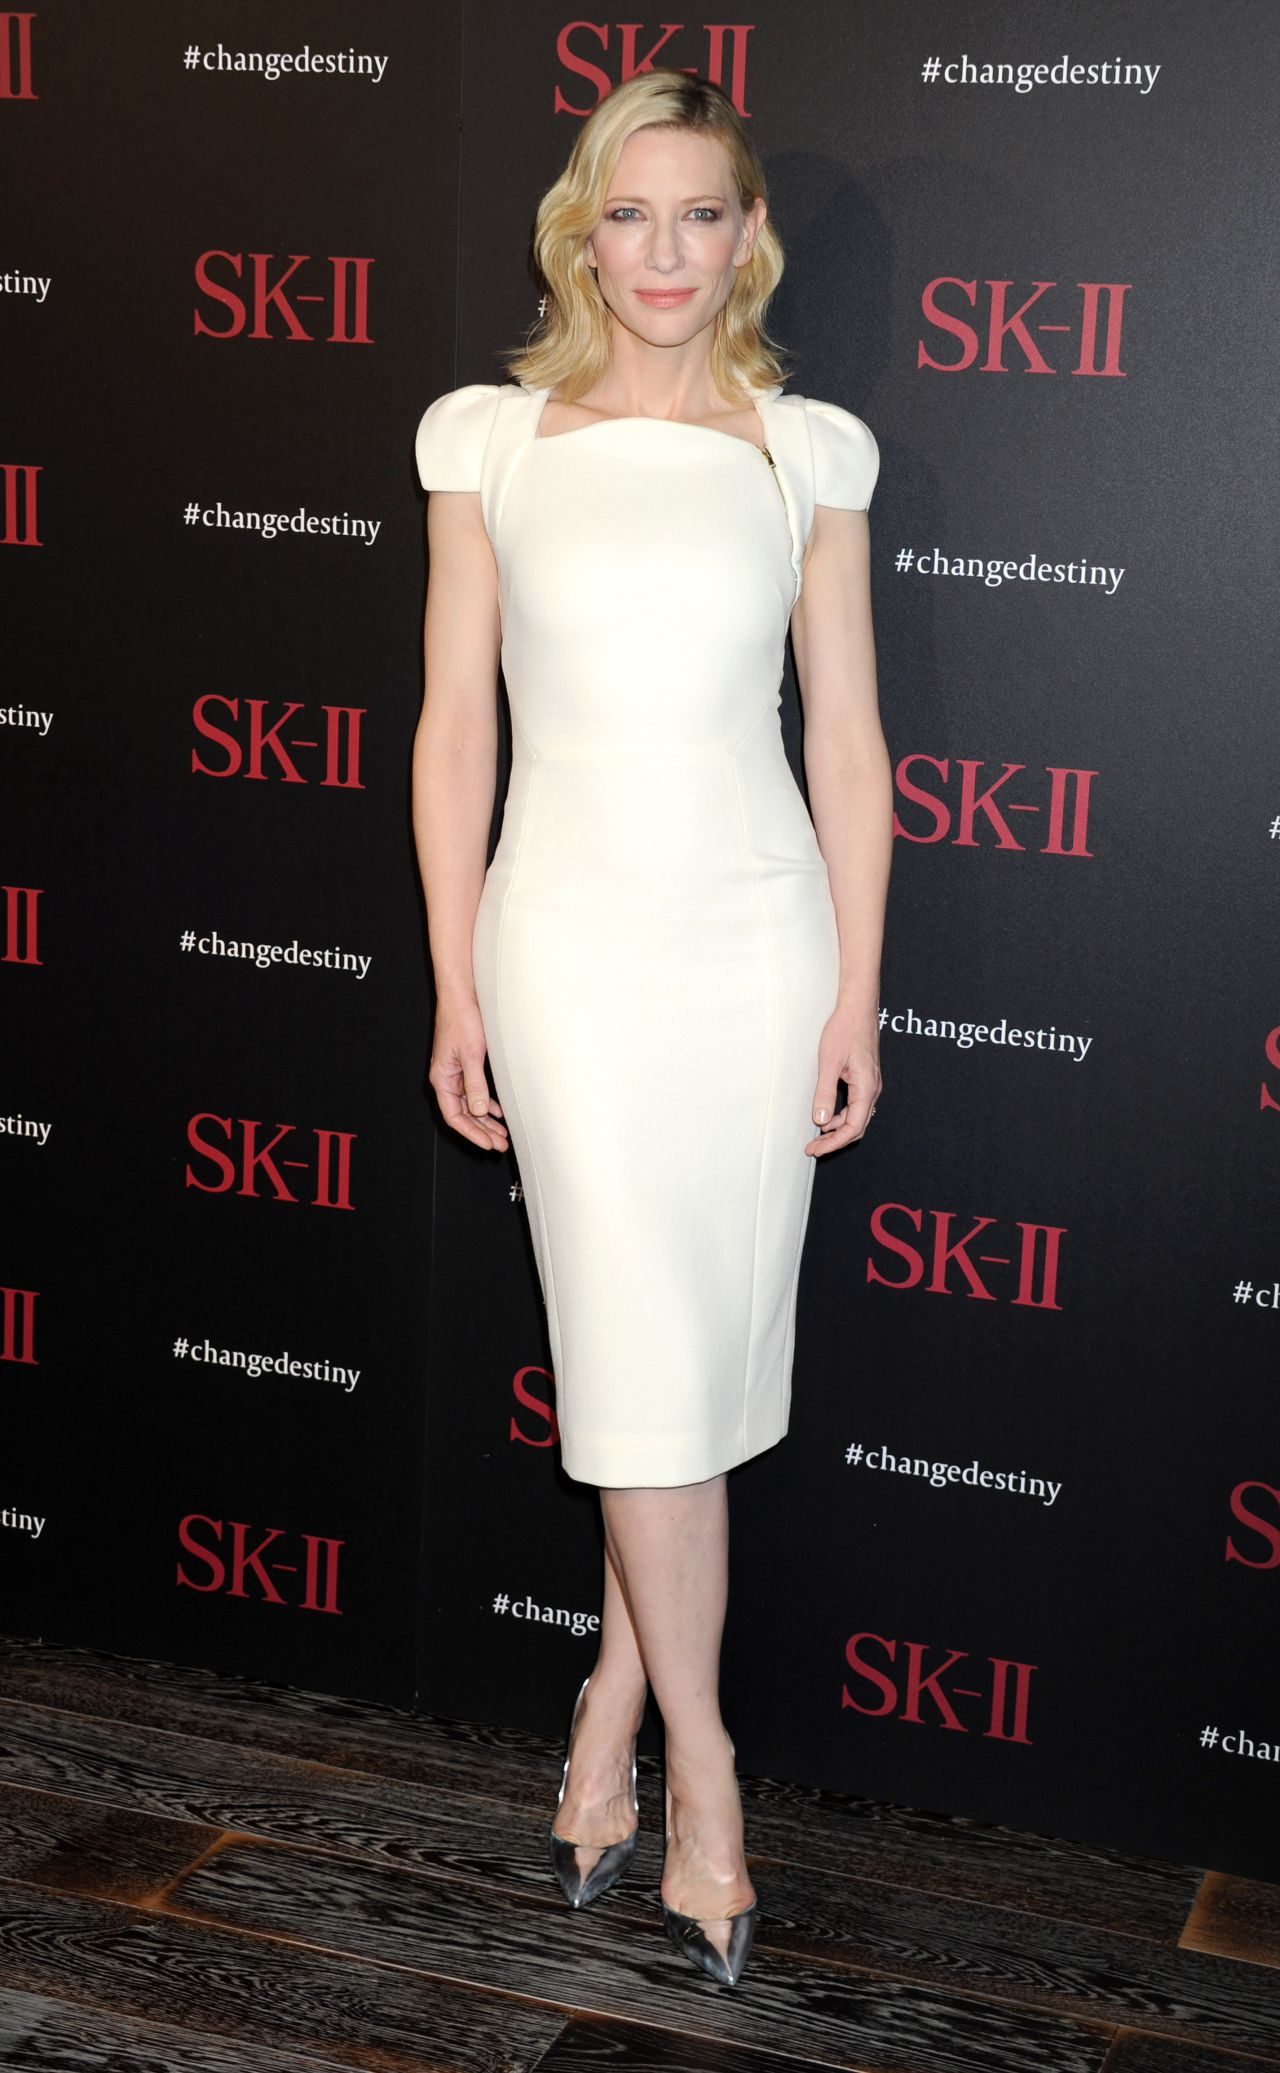 cate-blanchett-sk-ii-changedestiny-forum-in-los-angeles-2-26-2016-1